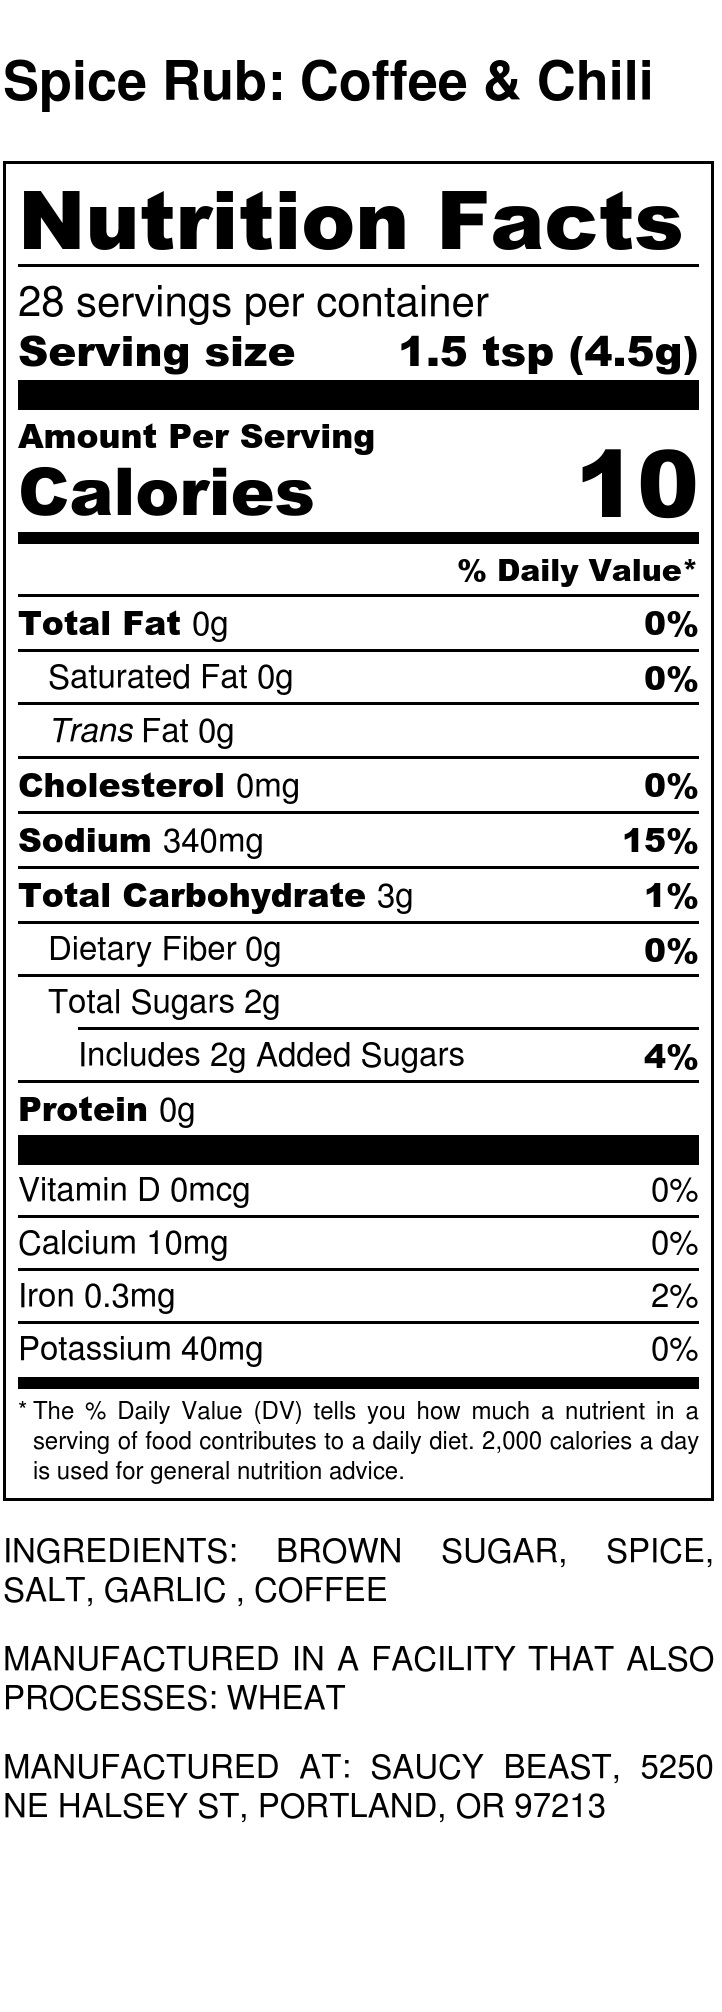 Spice Rub_ Coffee & Chili - Nutrition Label.jpg